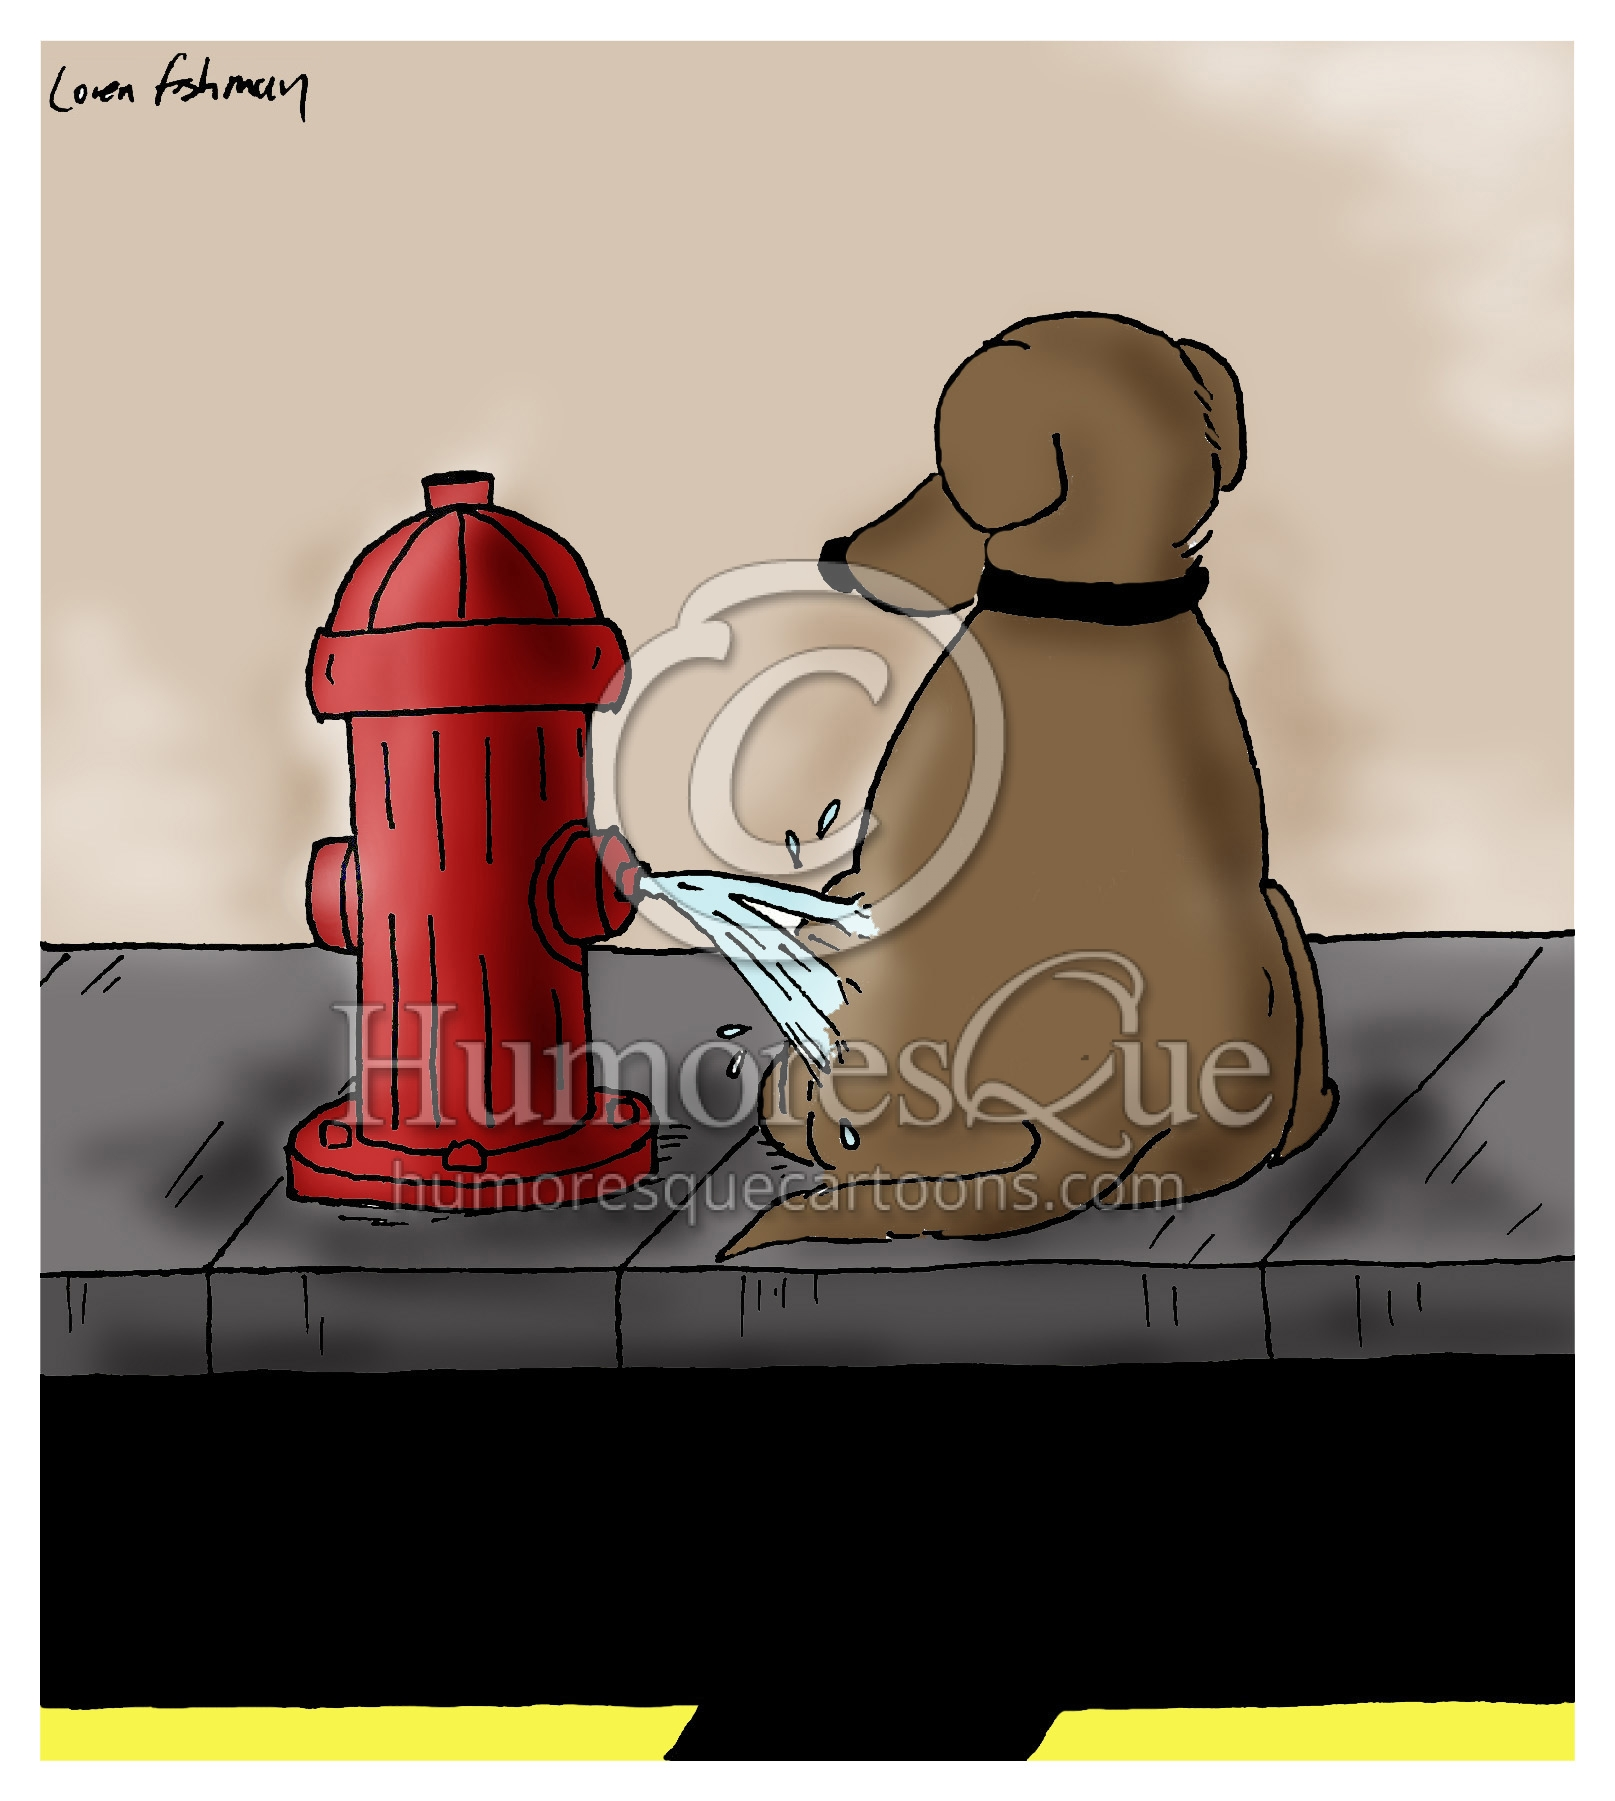 fire hydrant peeing on a dog cartoon